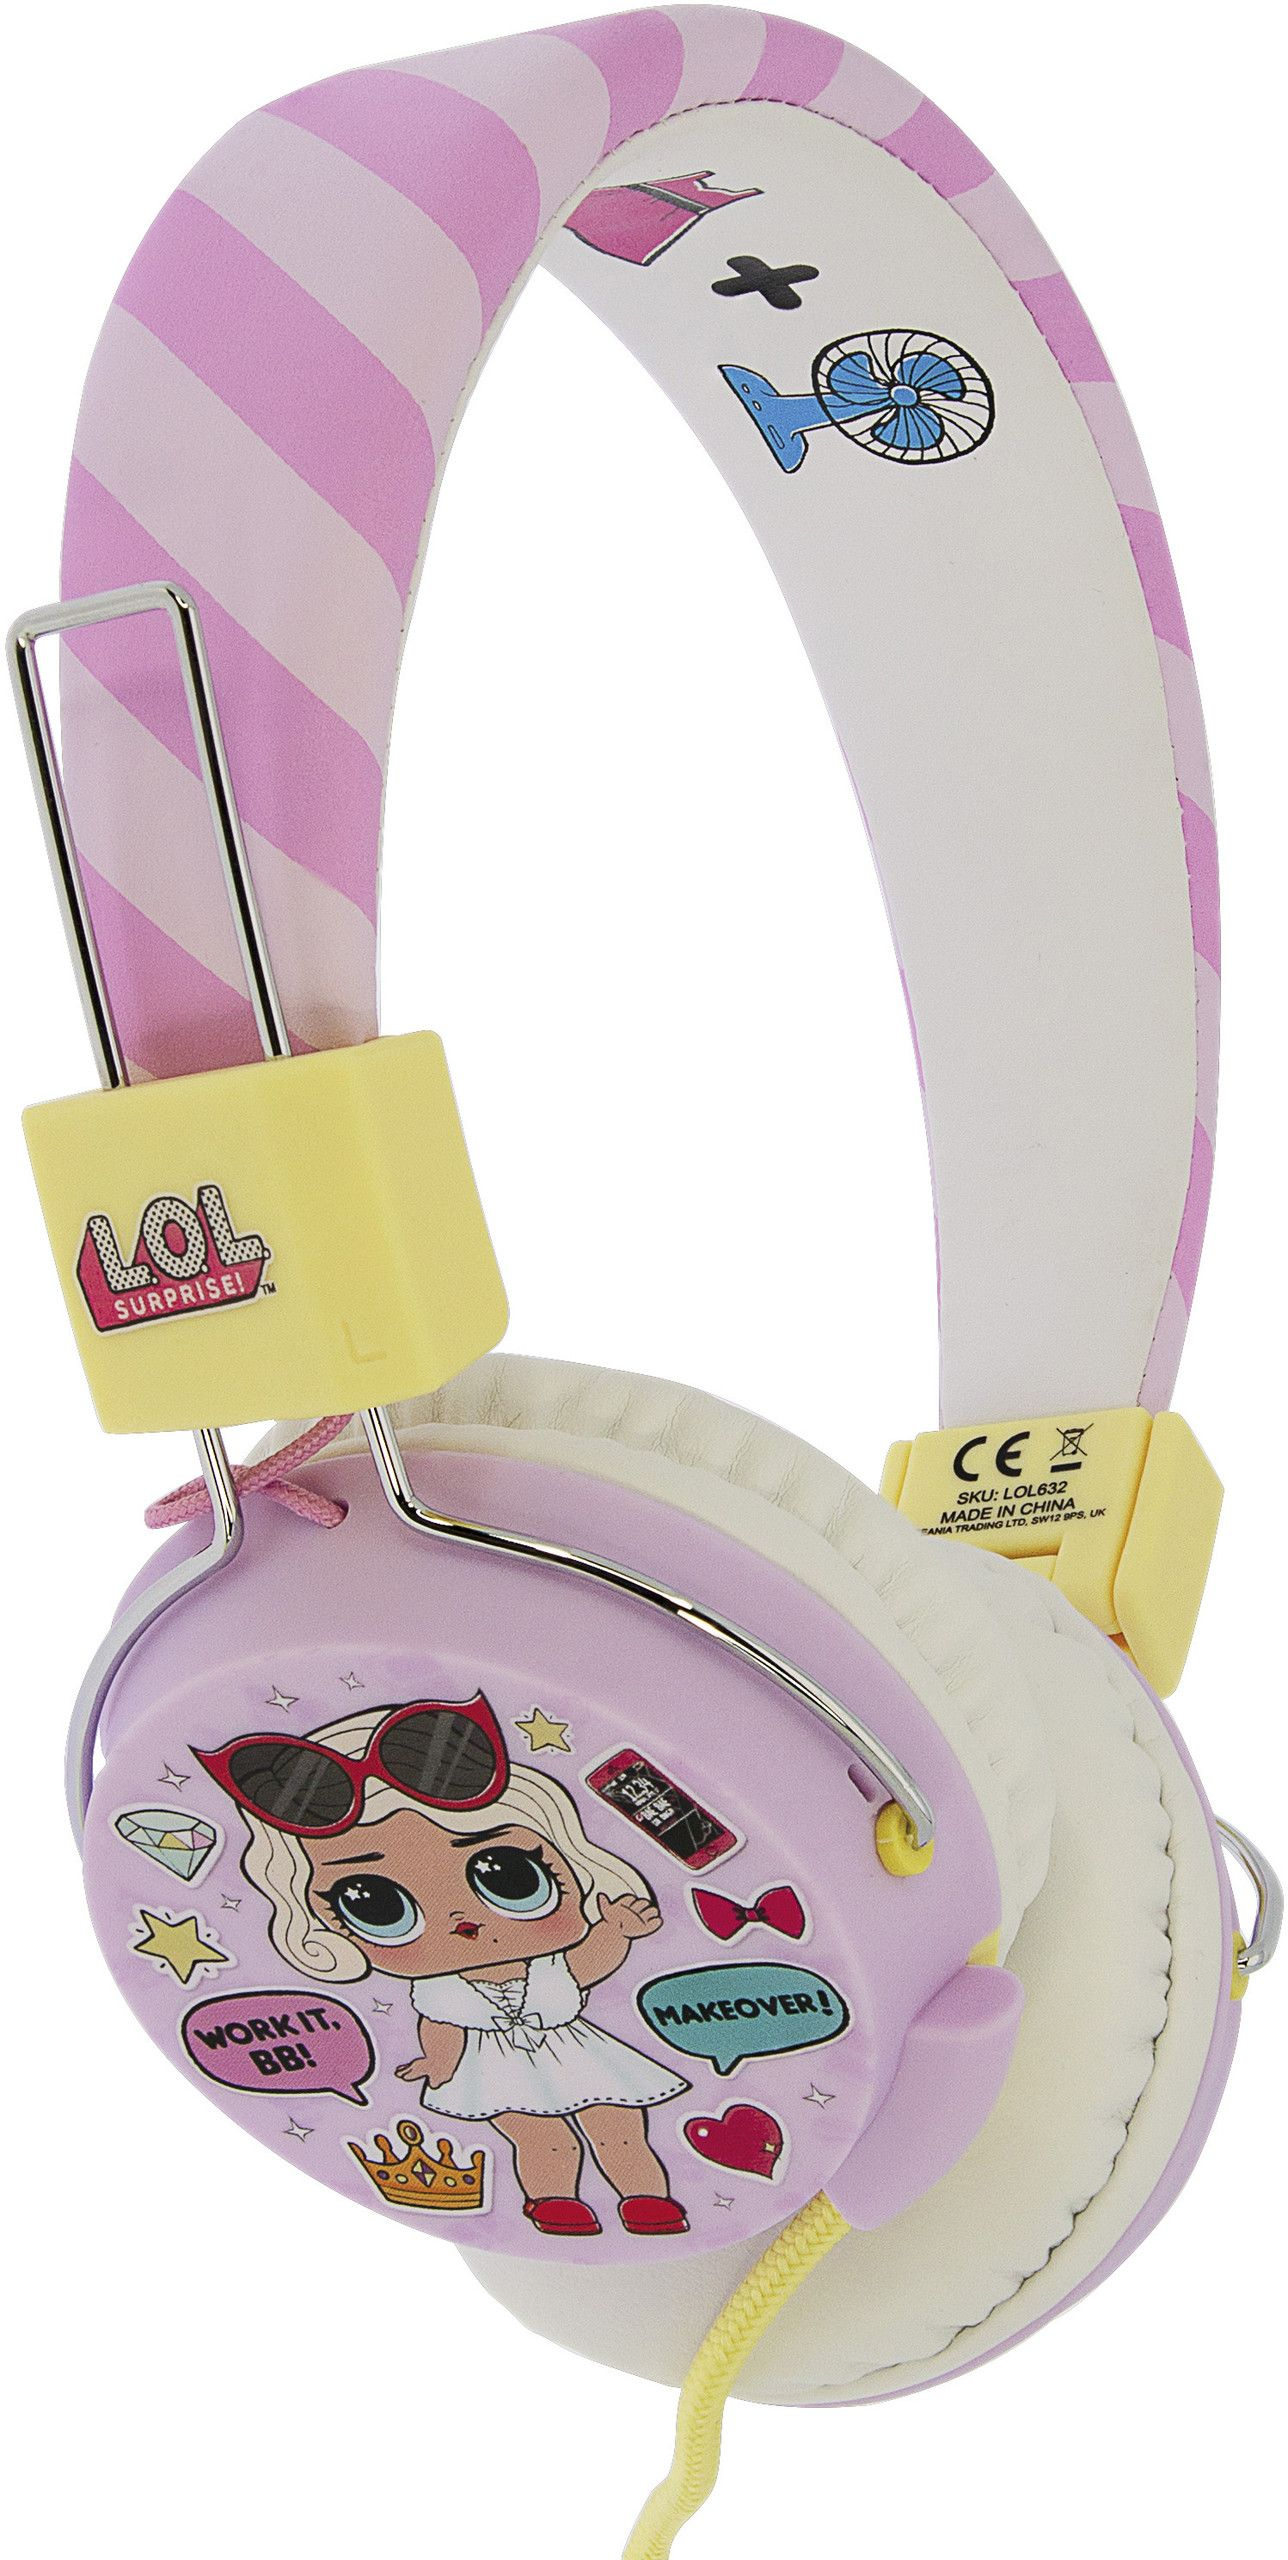 L.O.L. Surprise! Glam Folding Headphones